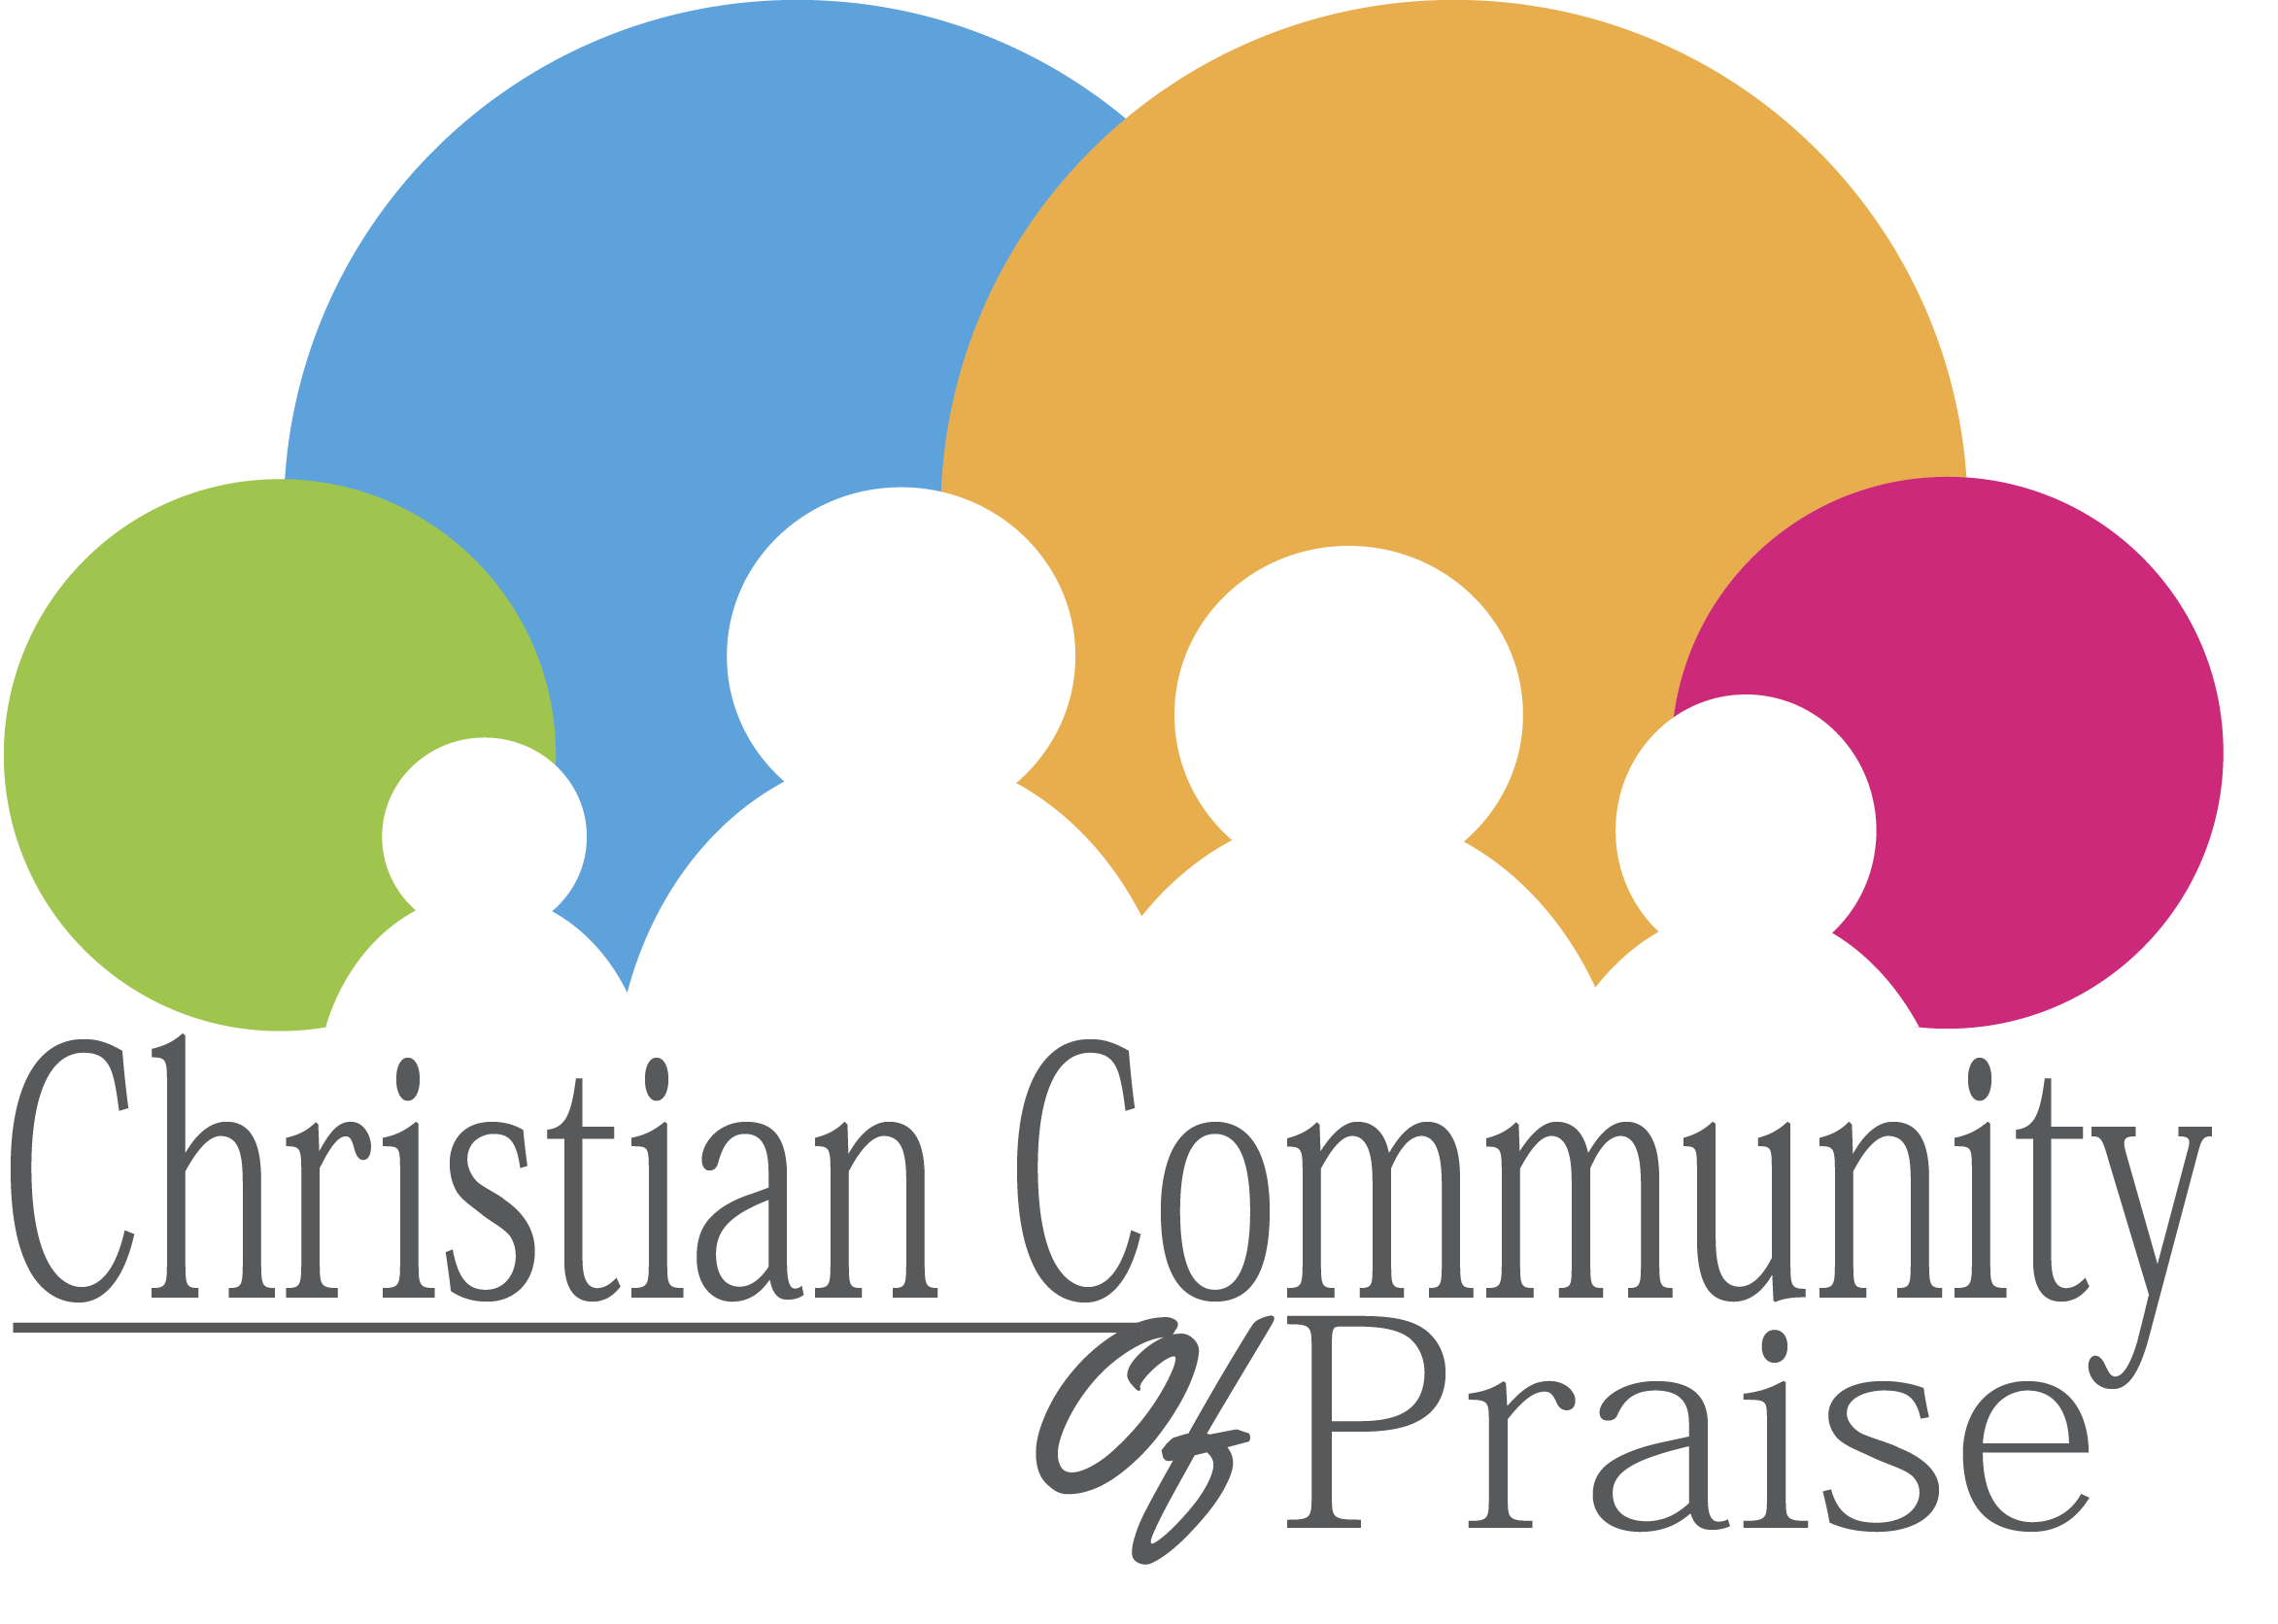 Christian Community of Praise